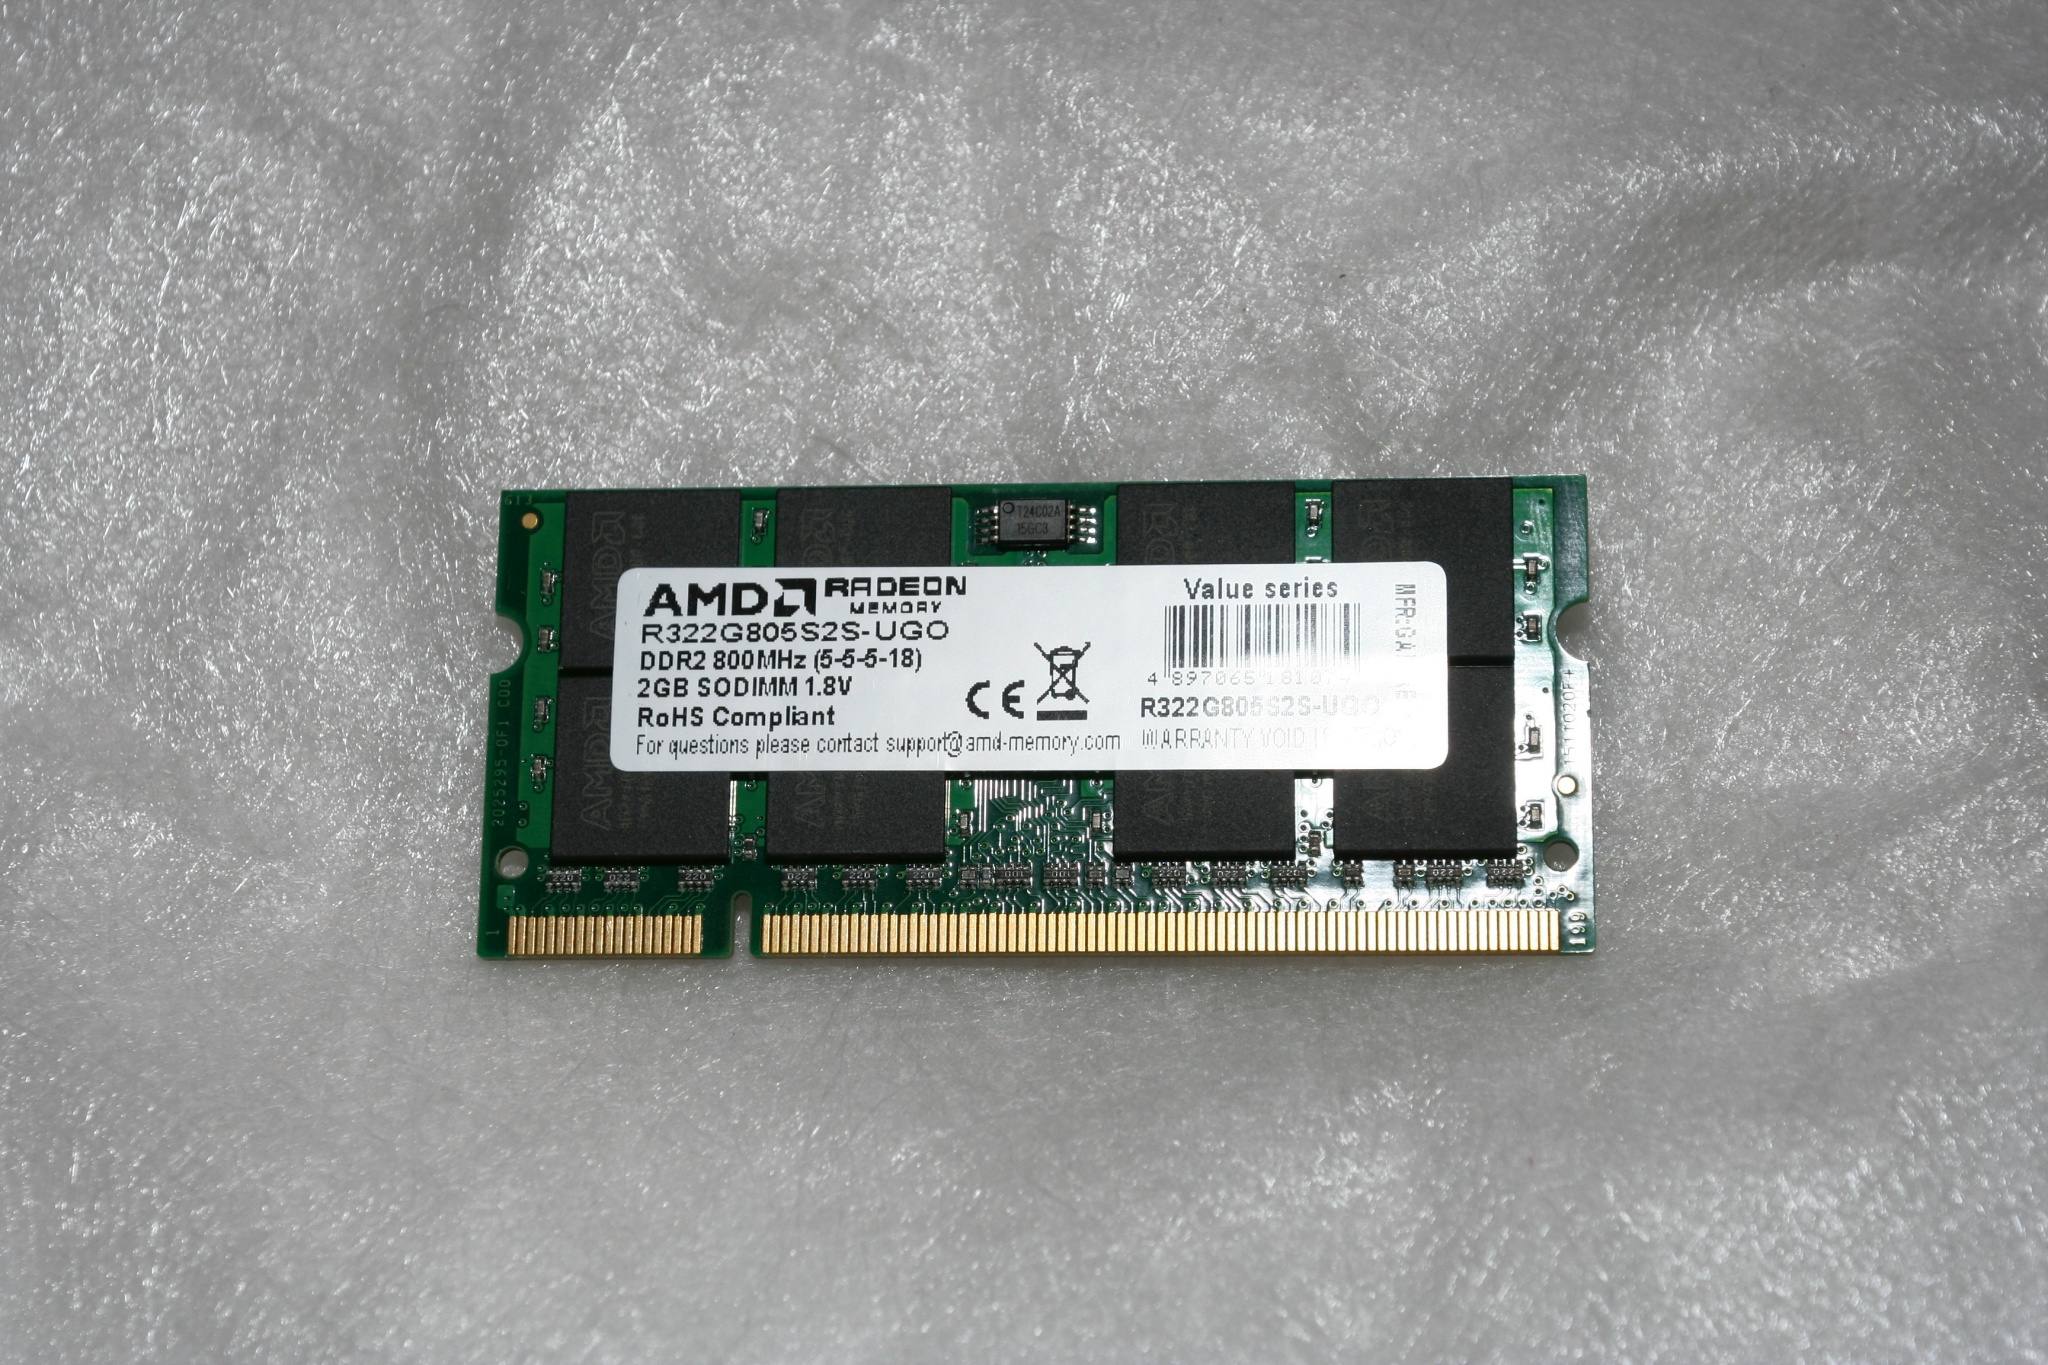 Amd So Dimm Ddr2 2gb Memory 800mhz Pc 6400 R322g805s2s